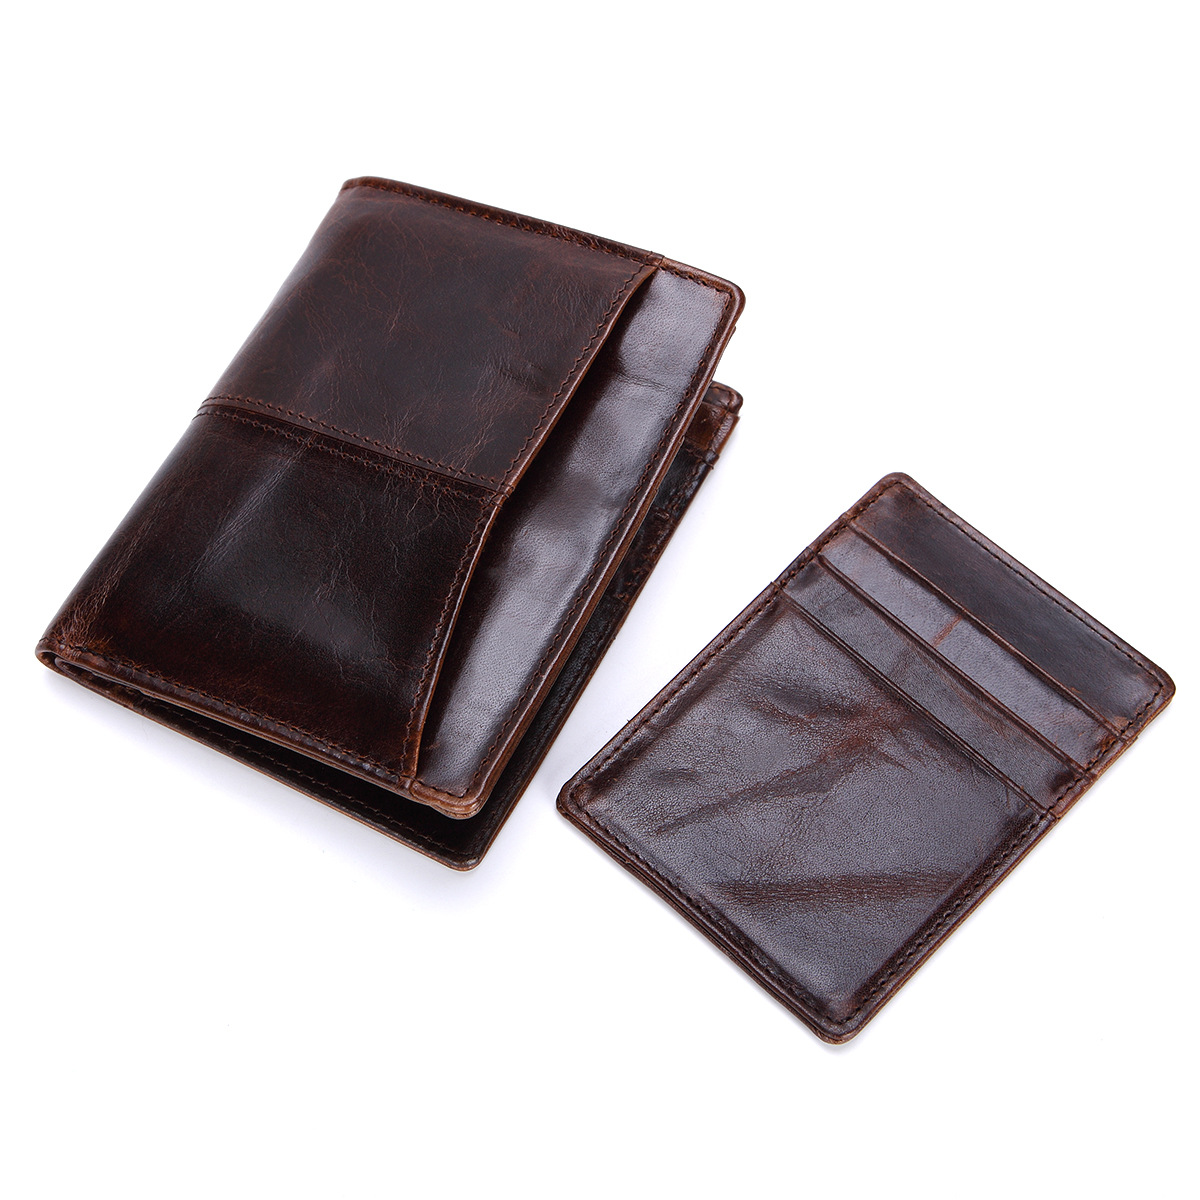 Genuine Leather Men Wallet Vintage Short Male Purse Credit Card Case Portfolio for Men Multi-functional Combination of Wallet ford cup viscosity cup viscosity measurement cup paint viscosity cup 3 4 optional page 5